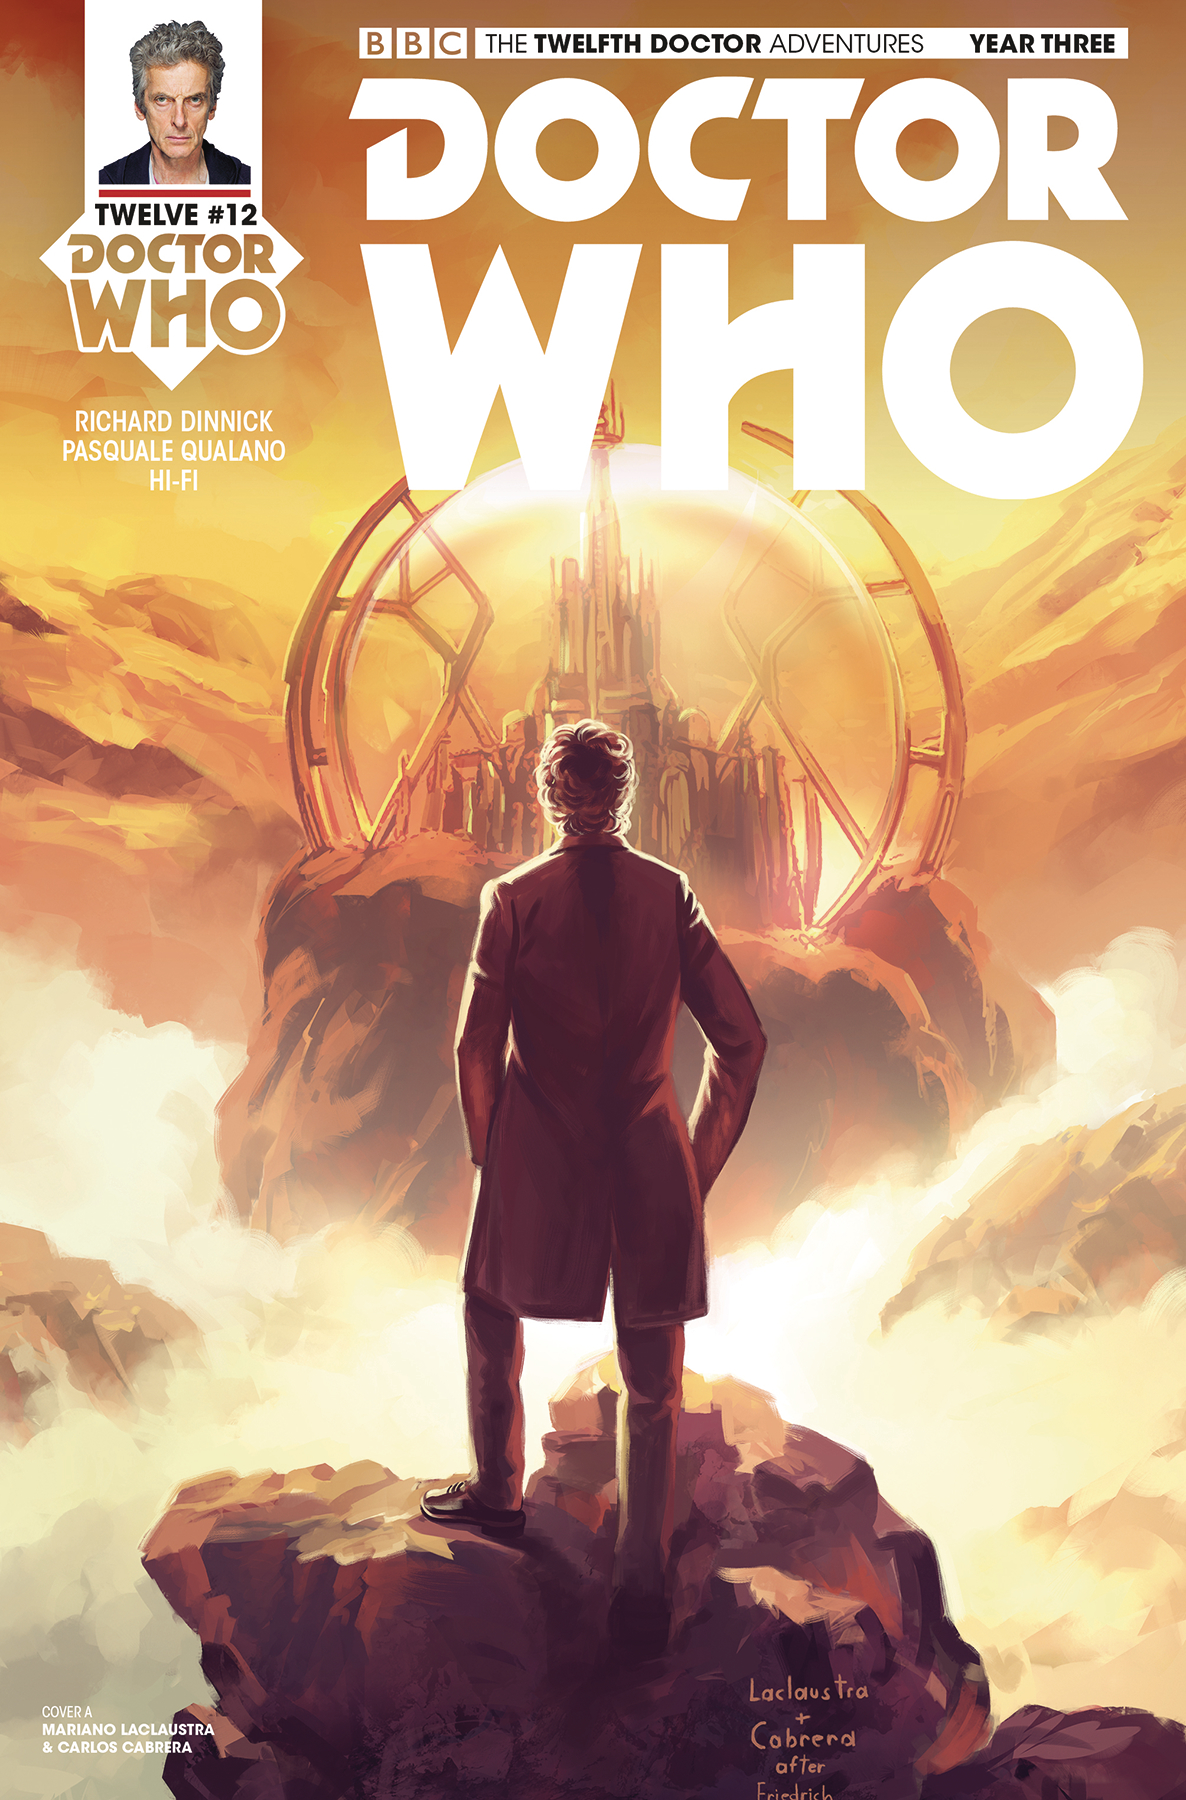 DOCTOR WHO 12TH YEAR THREE #12 CVR A LACLAUSTRA